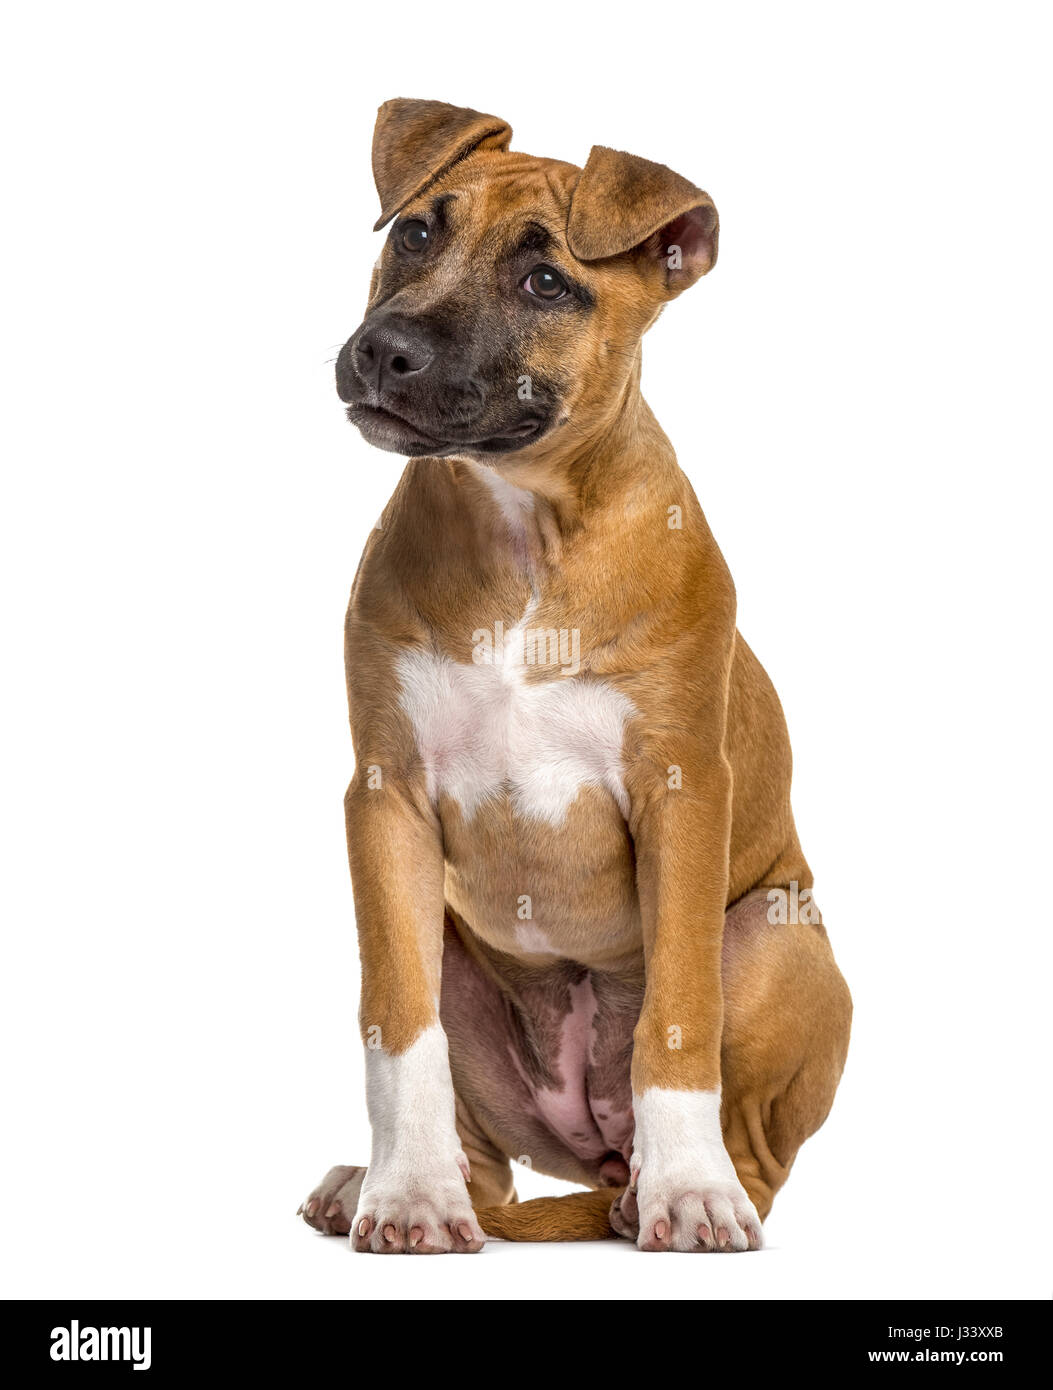 American Staffordshire Terrier puppy (4 months old) - Stock Image